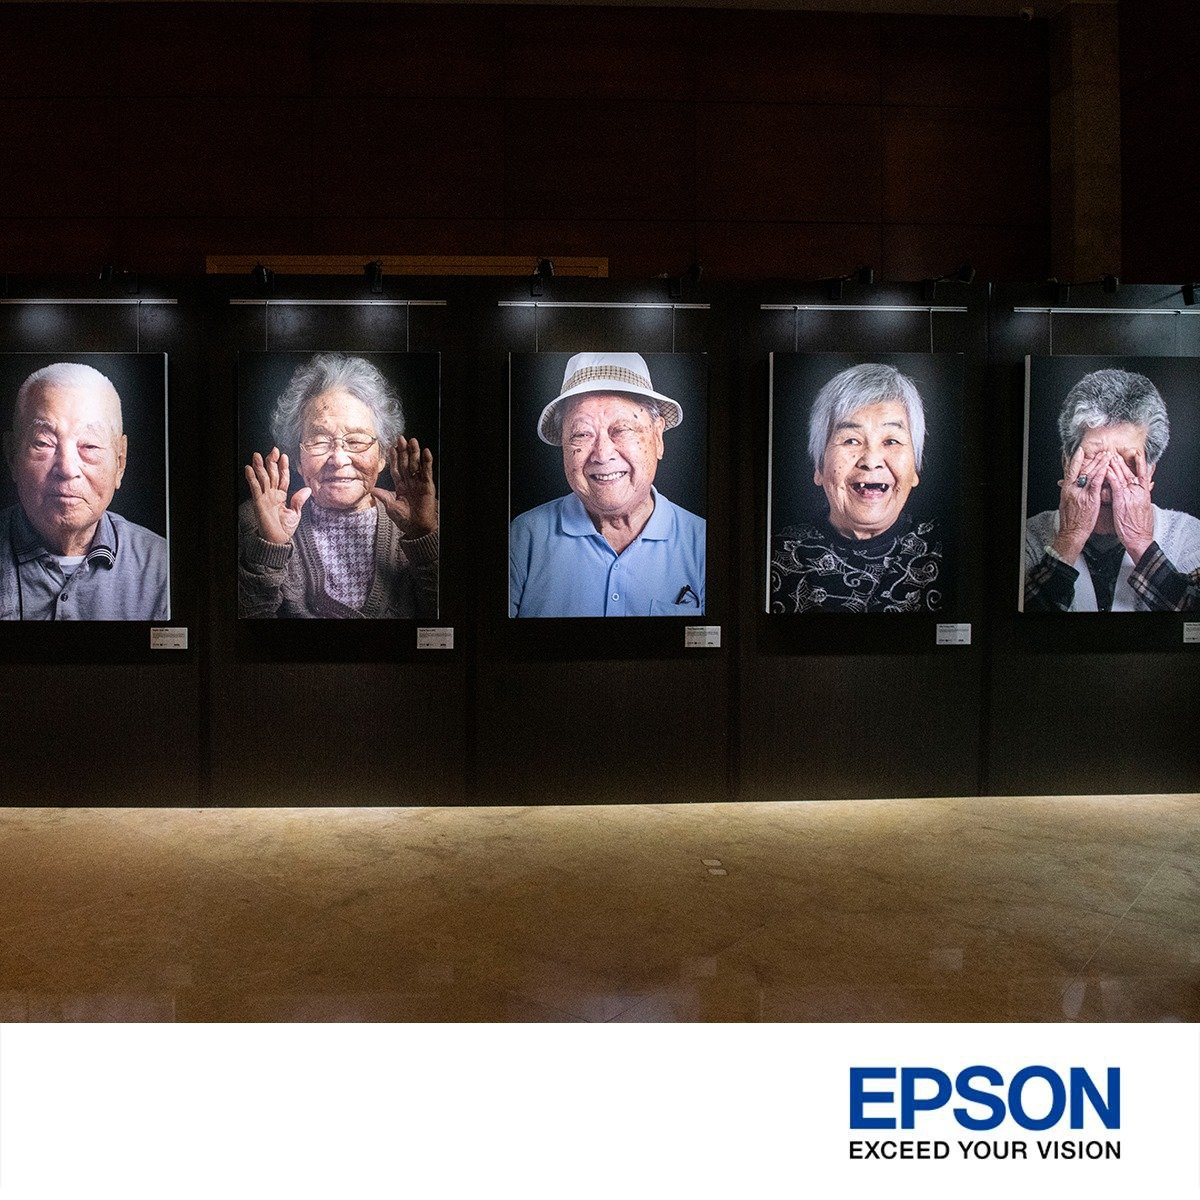 Epson printer photography exhibition singapore The fullerton hotel